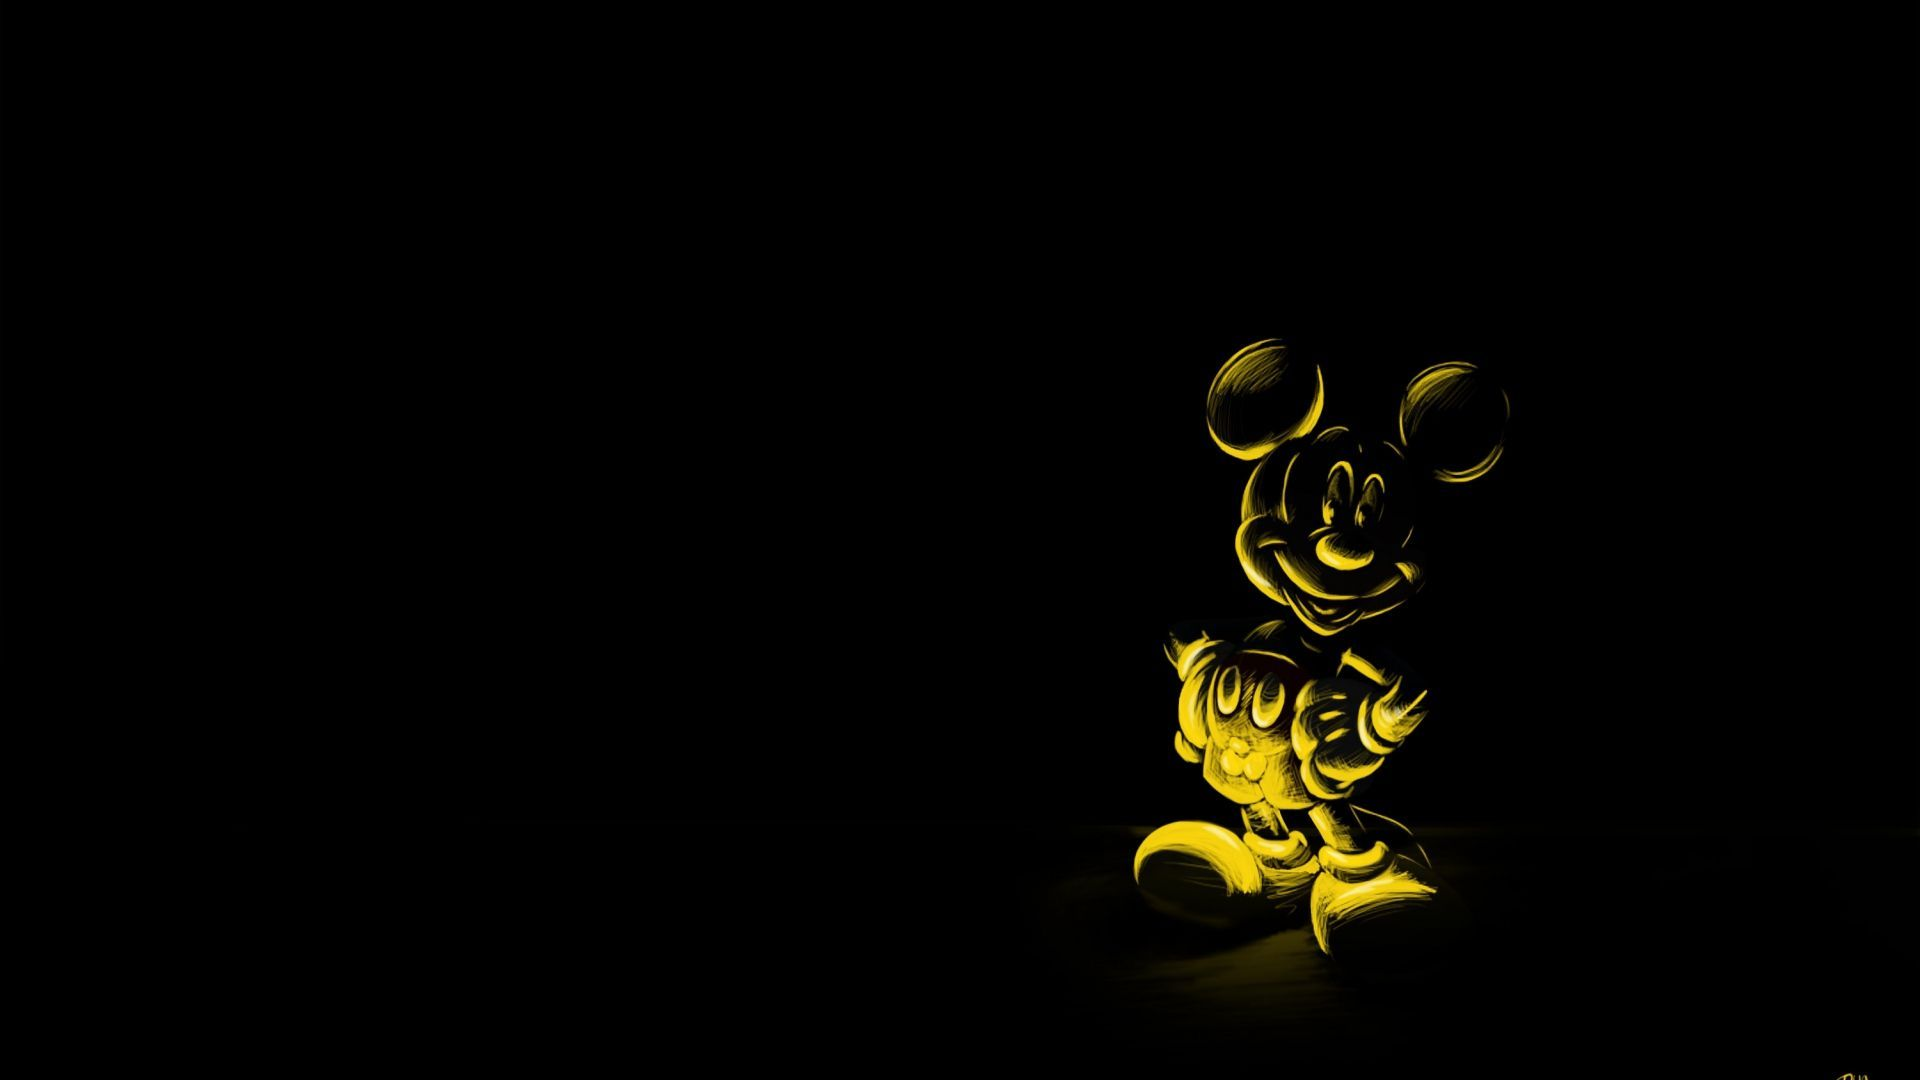 Top Black Cartoon Cover In High Quality Goldwallpapers Com